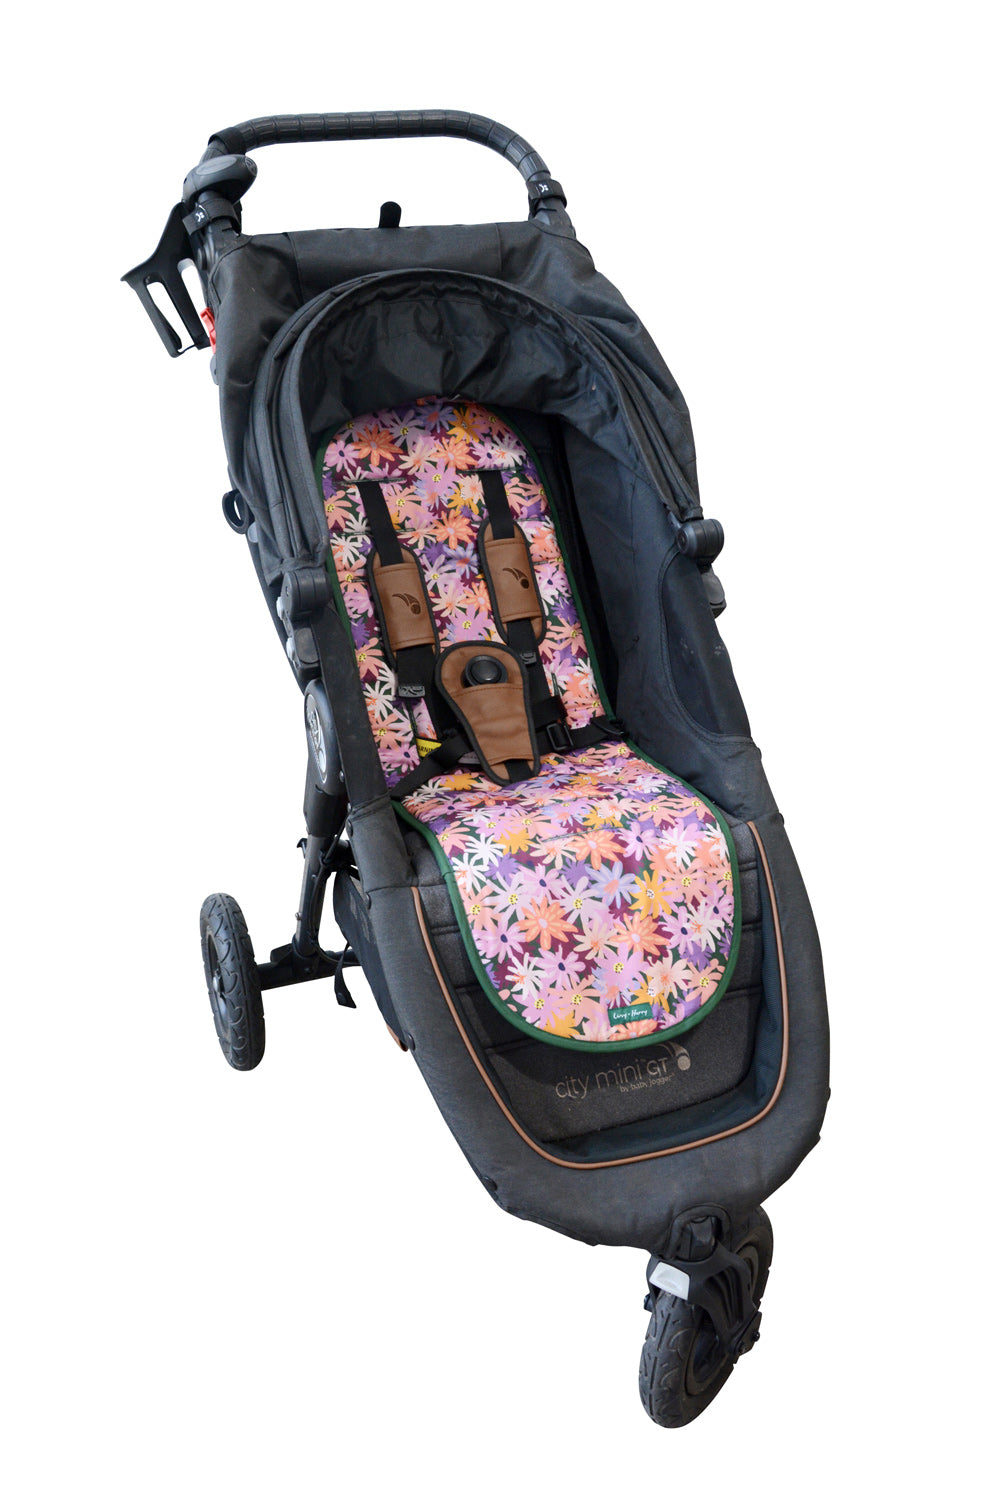 Colourpop Floral Luxe Pram Liner